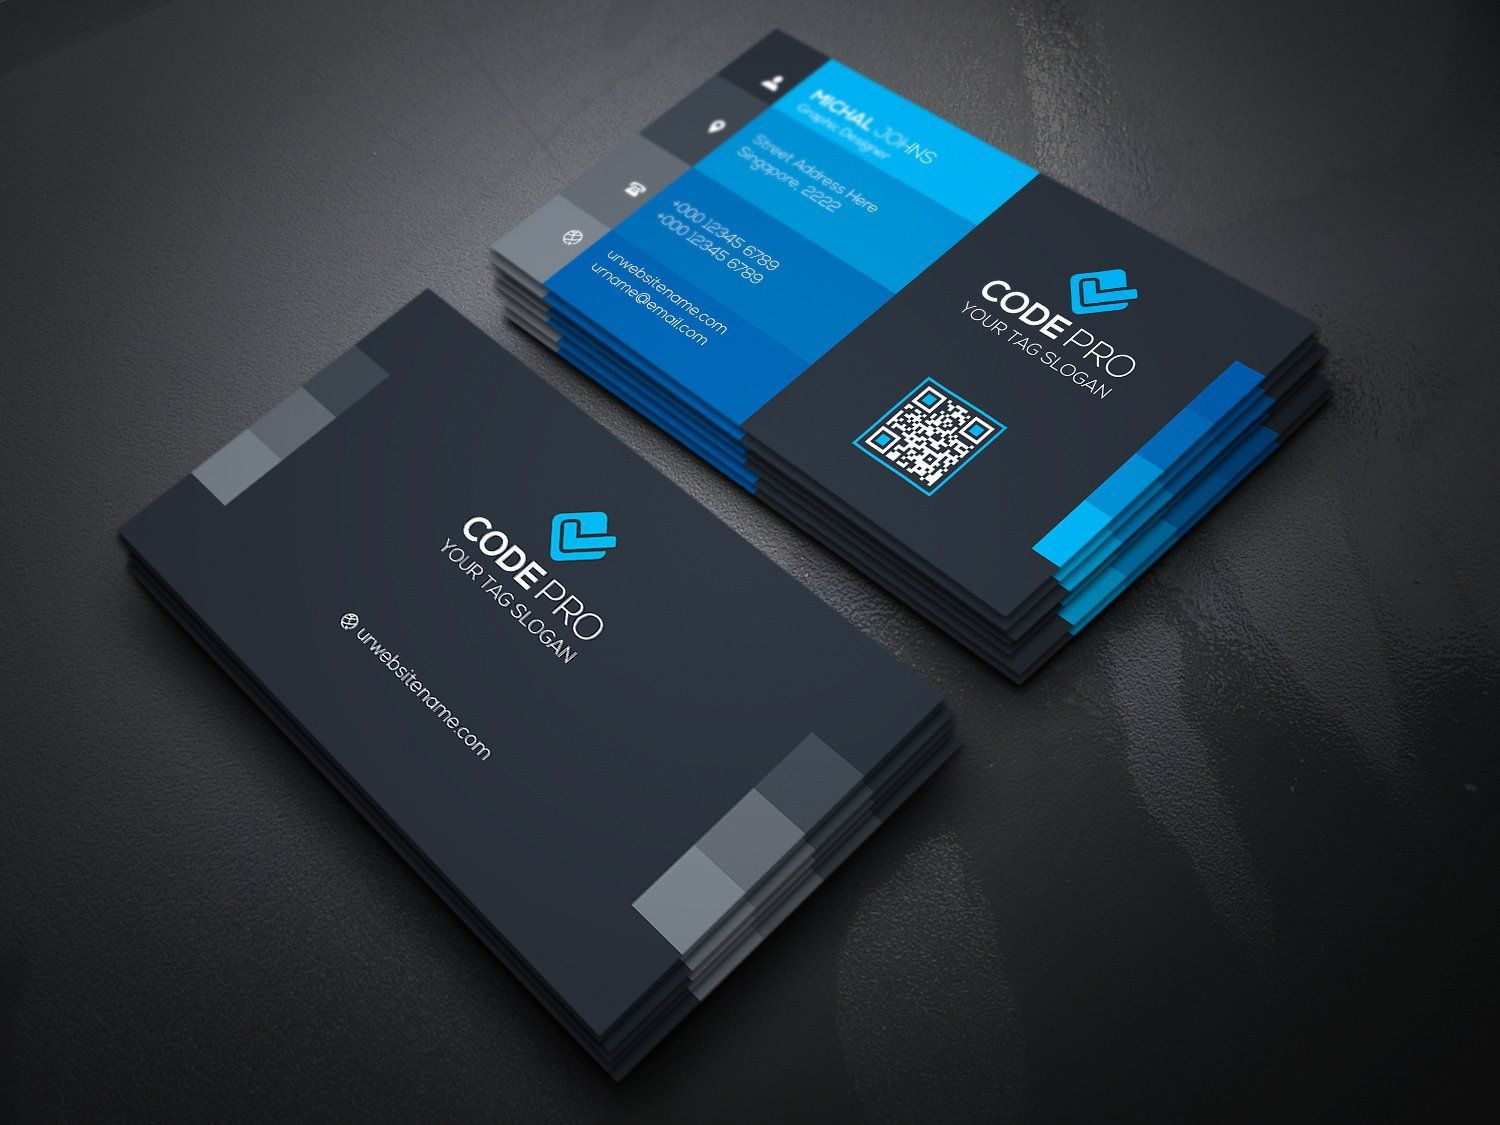 Multipurpose business card by create art on creativemarket card multipurpose business card by create art on creativemarket colourmoves Images